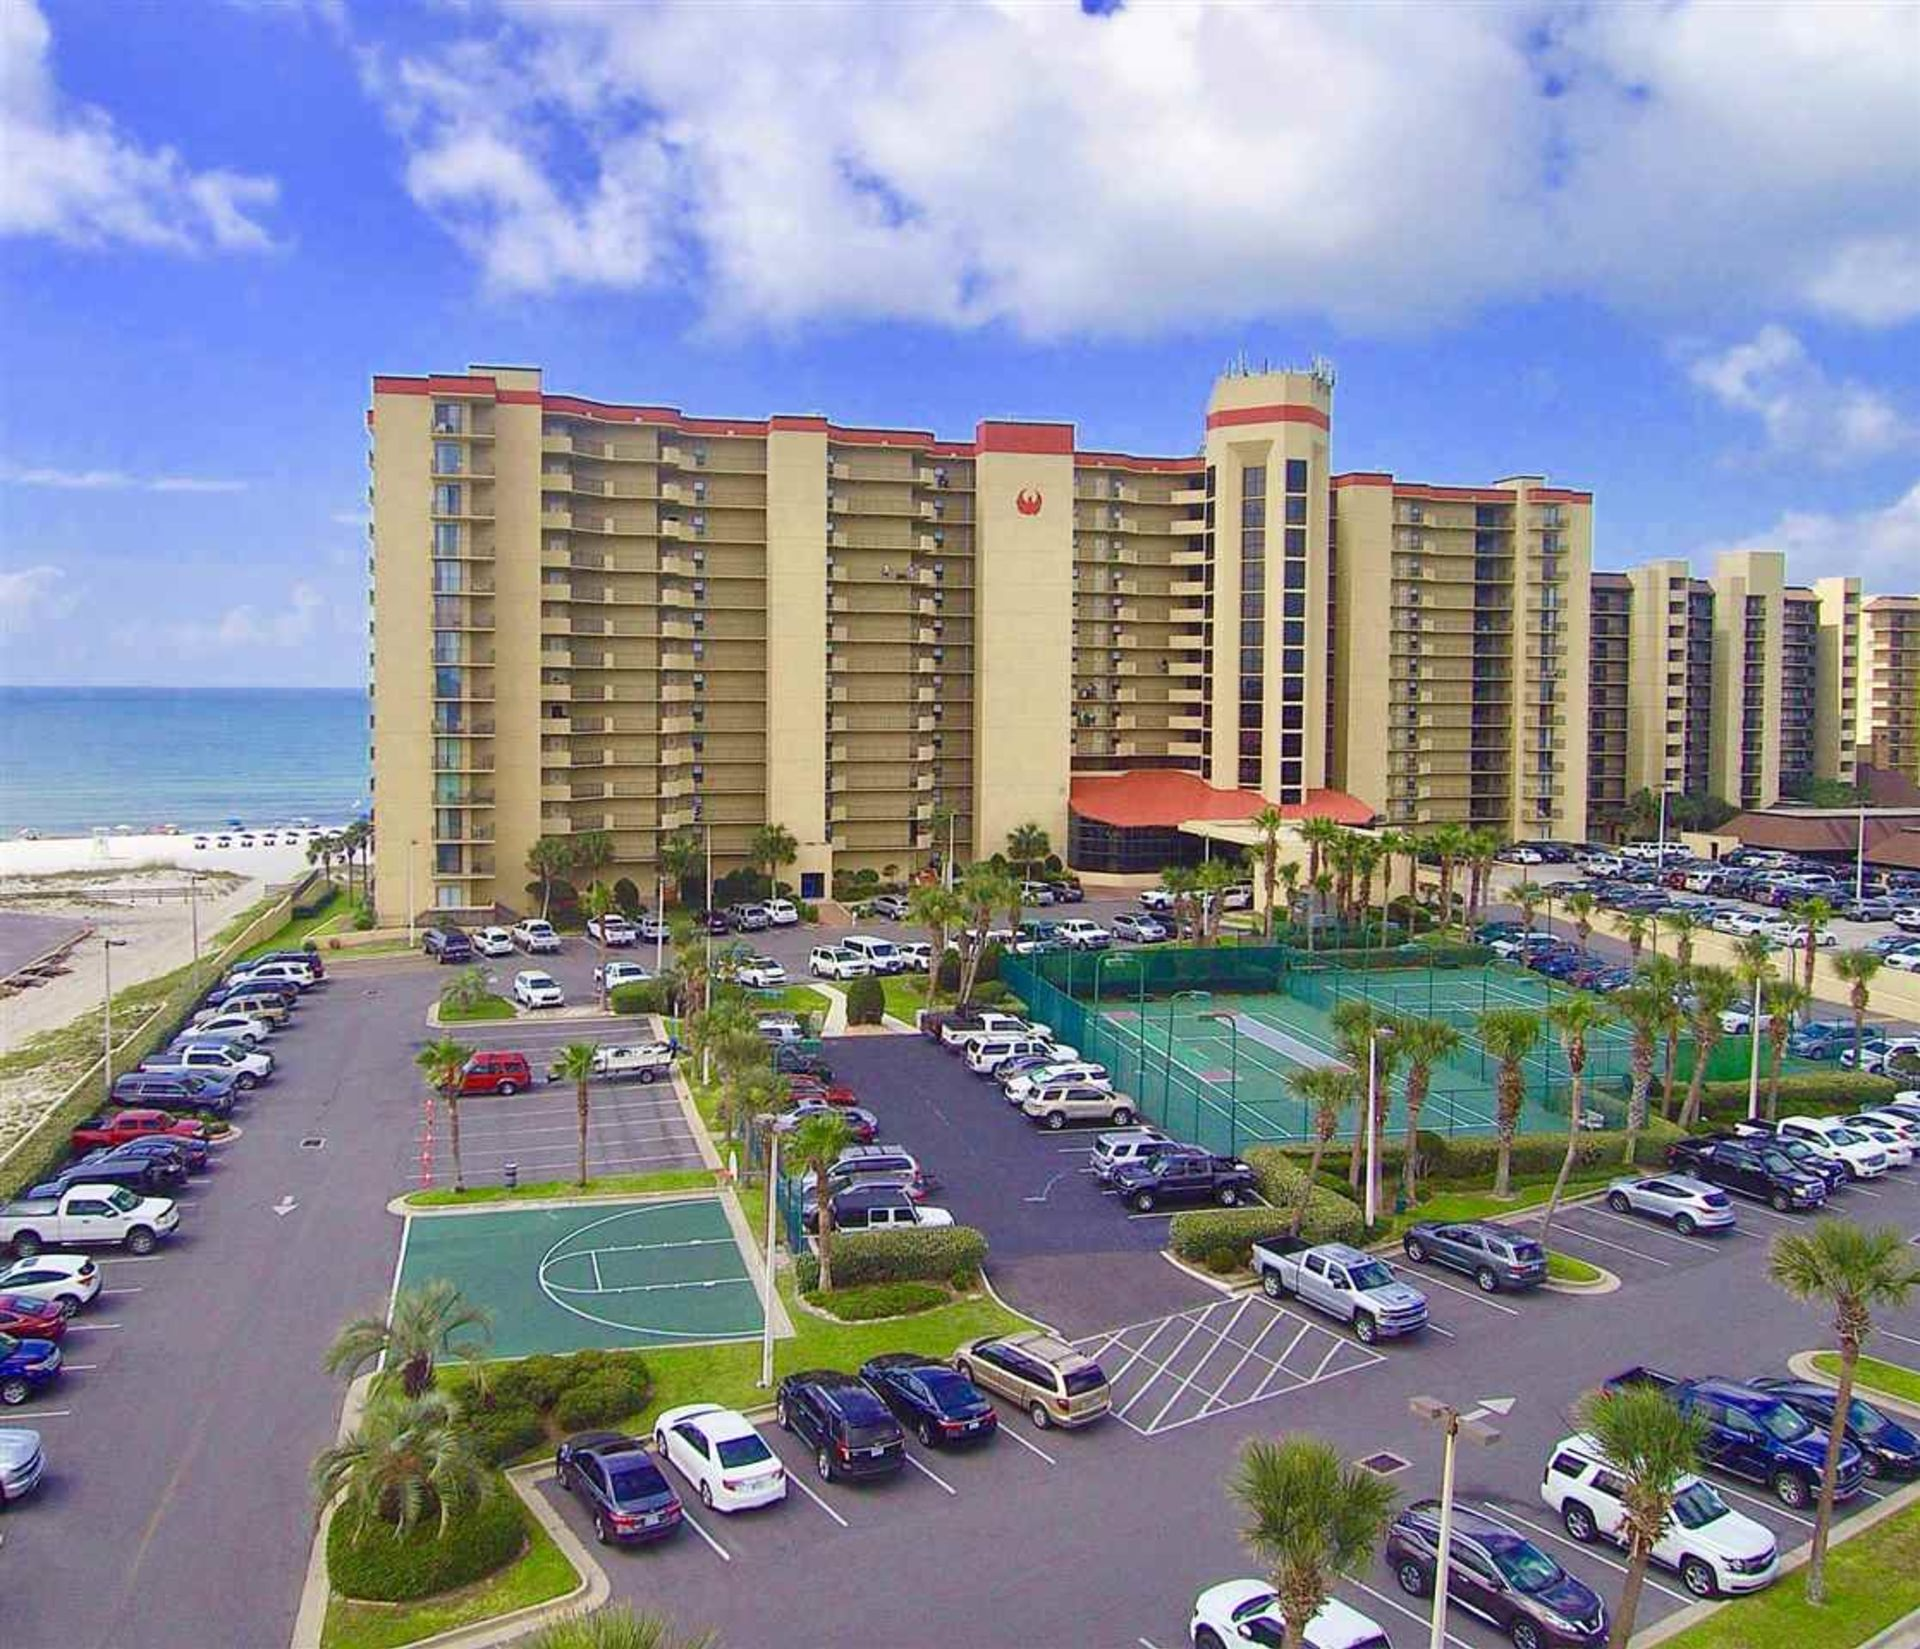 Orange Beach Condos from $300,000 to $400,000